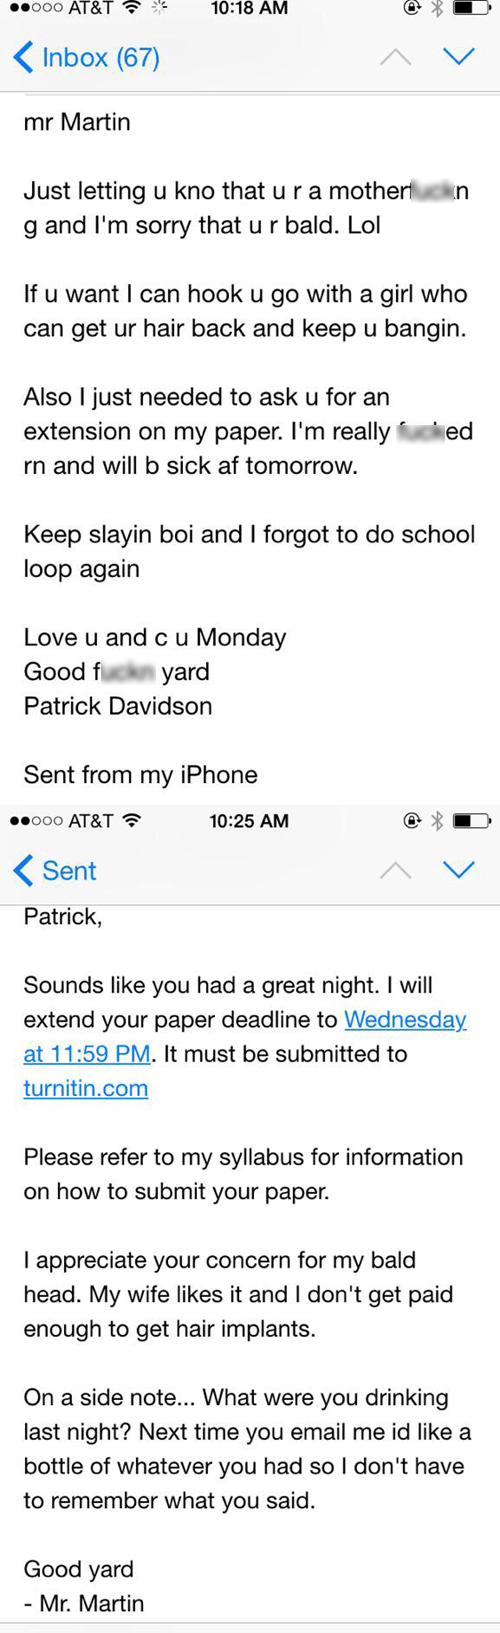 Drunk Emailing Your Teacher